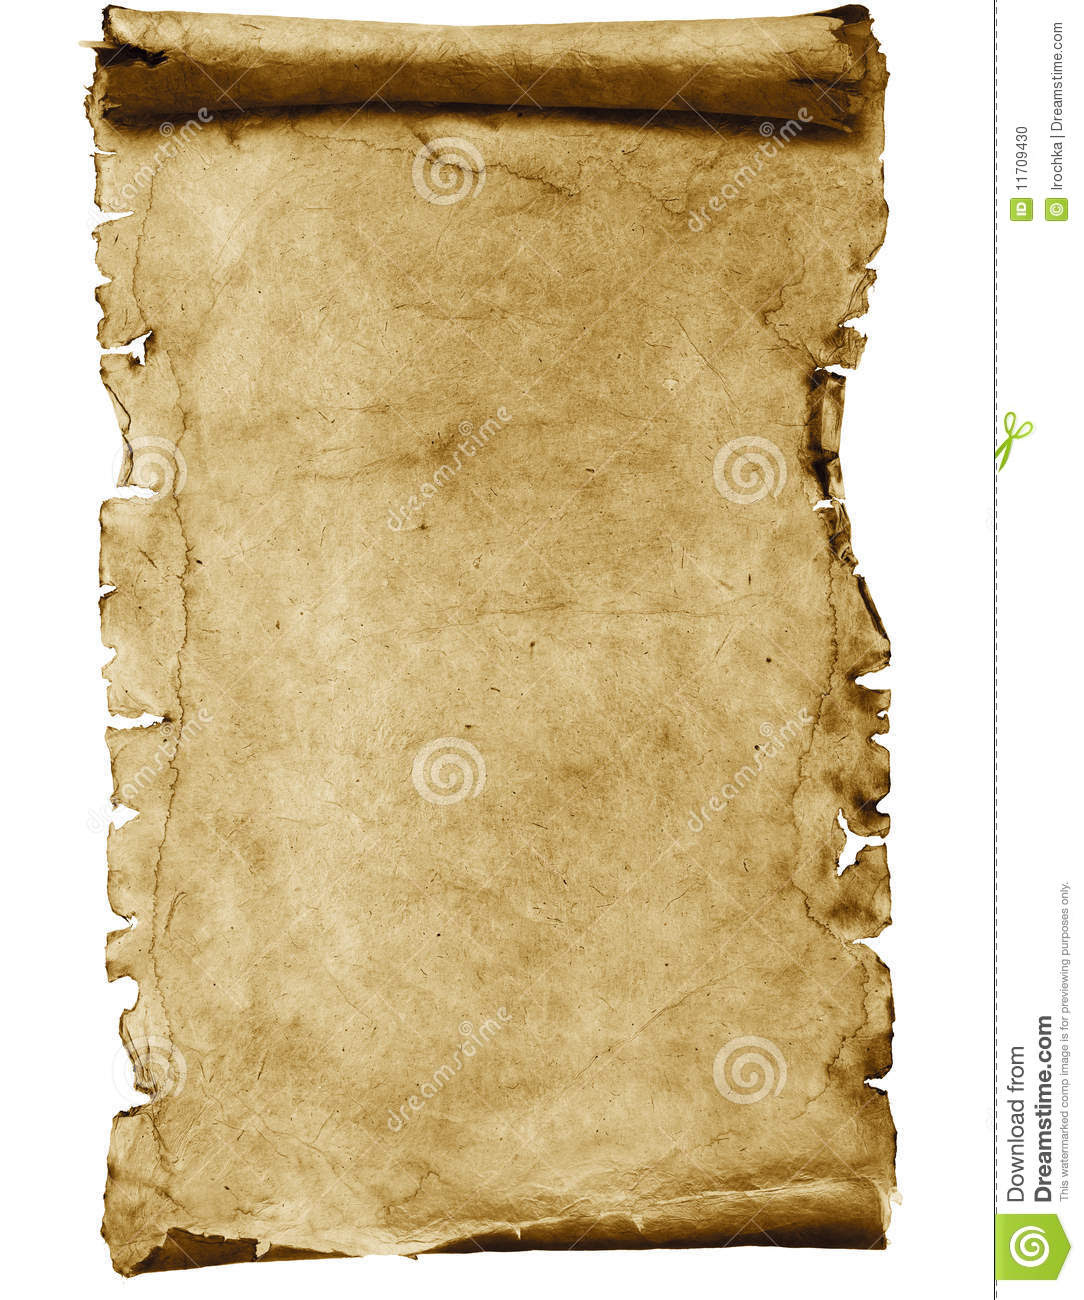 Blank Parchment Scroll Stock Photo - Image: 11709430